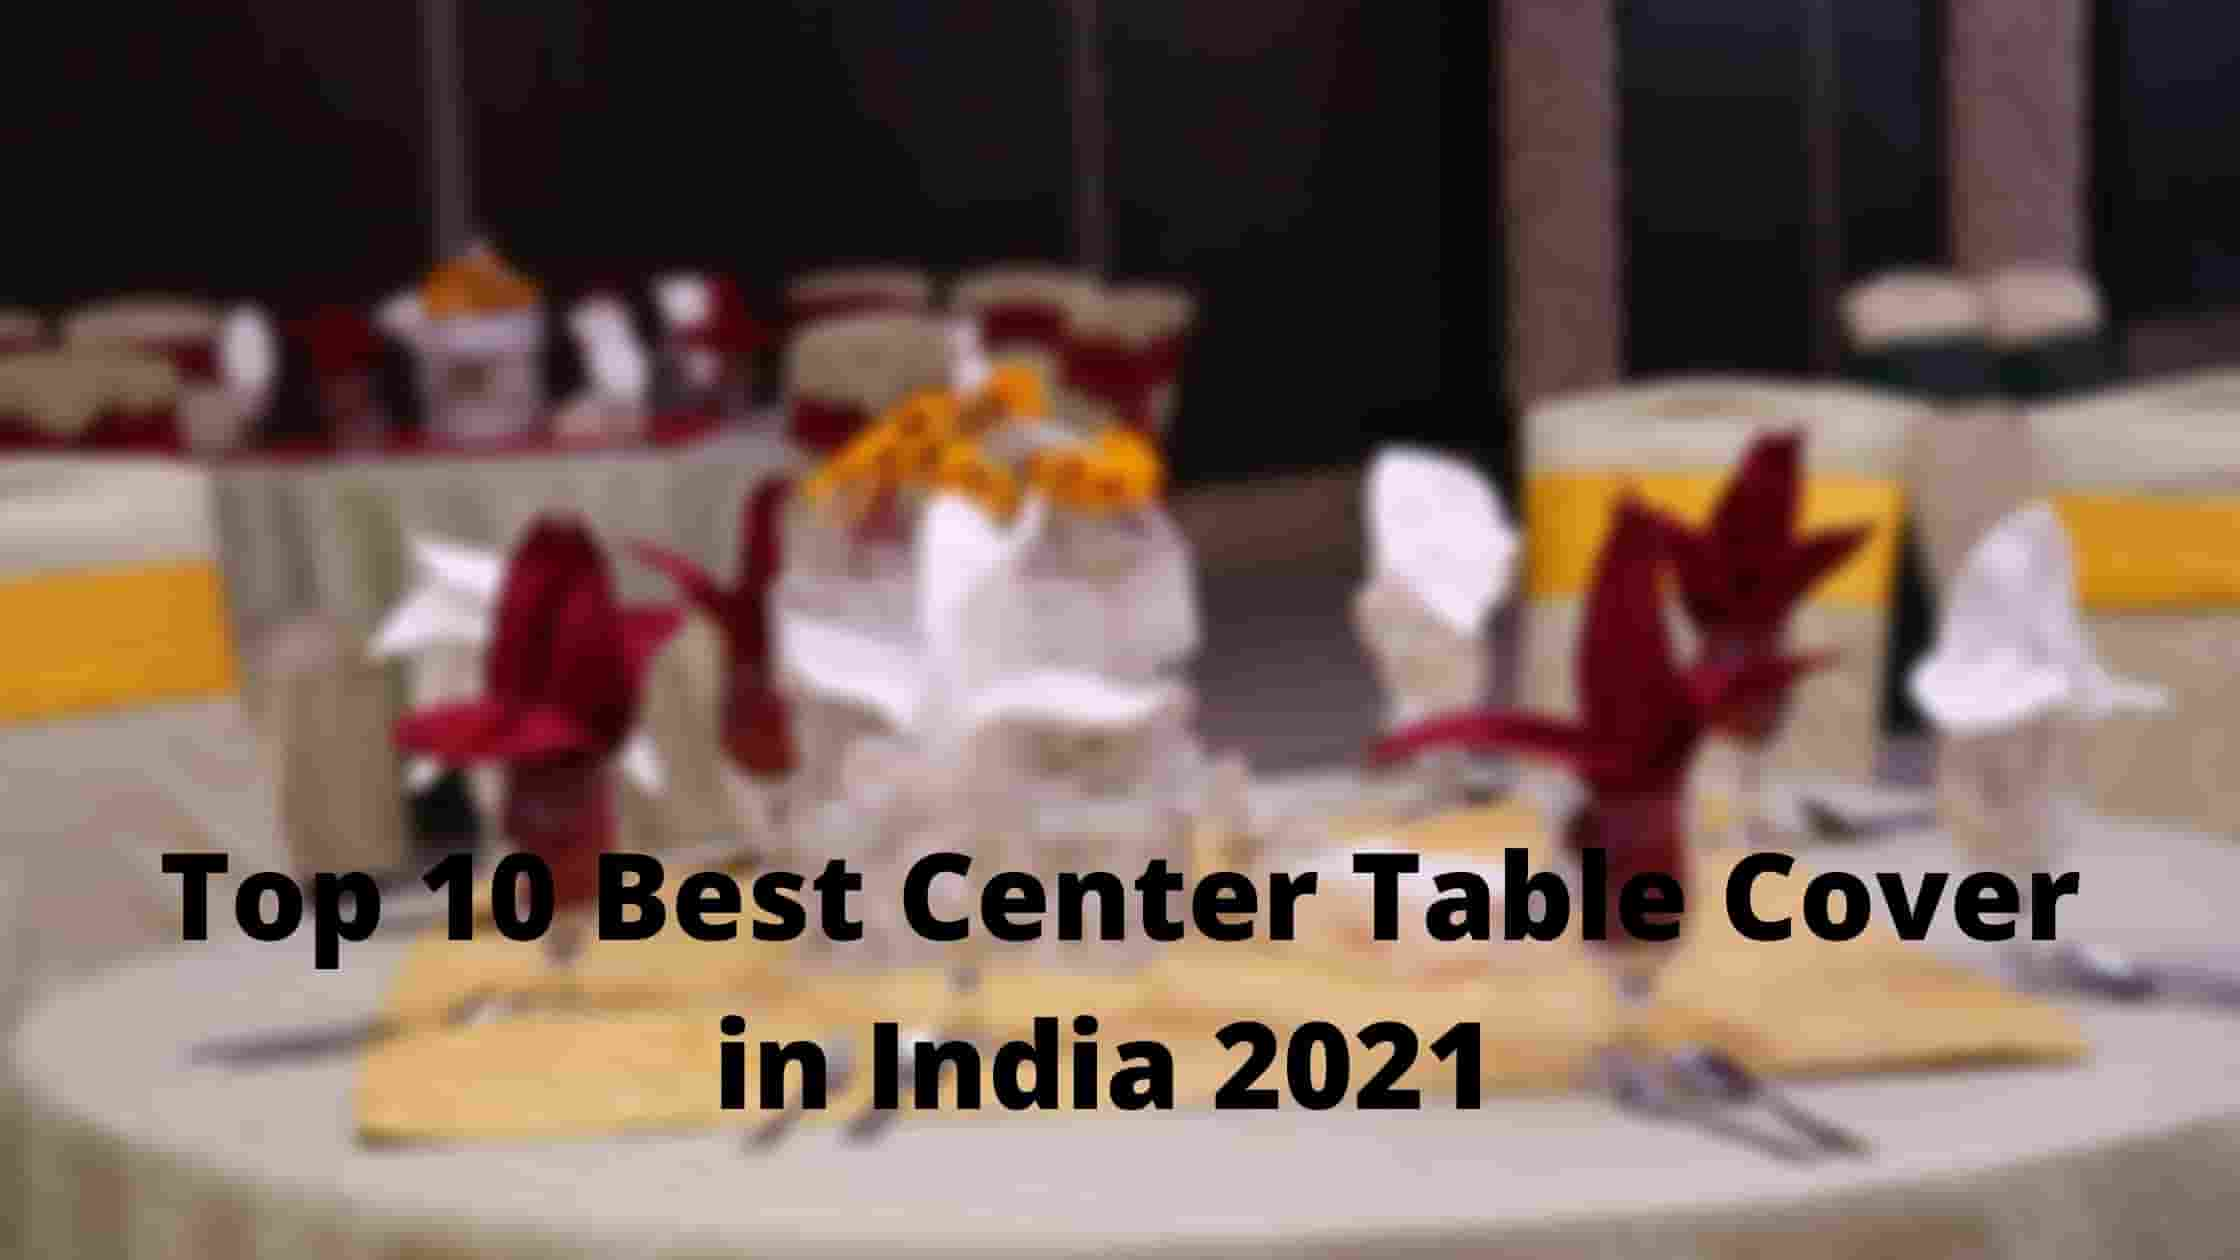 Now Top 10 Best Center Table Cover in India 2021 [Bengali]